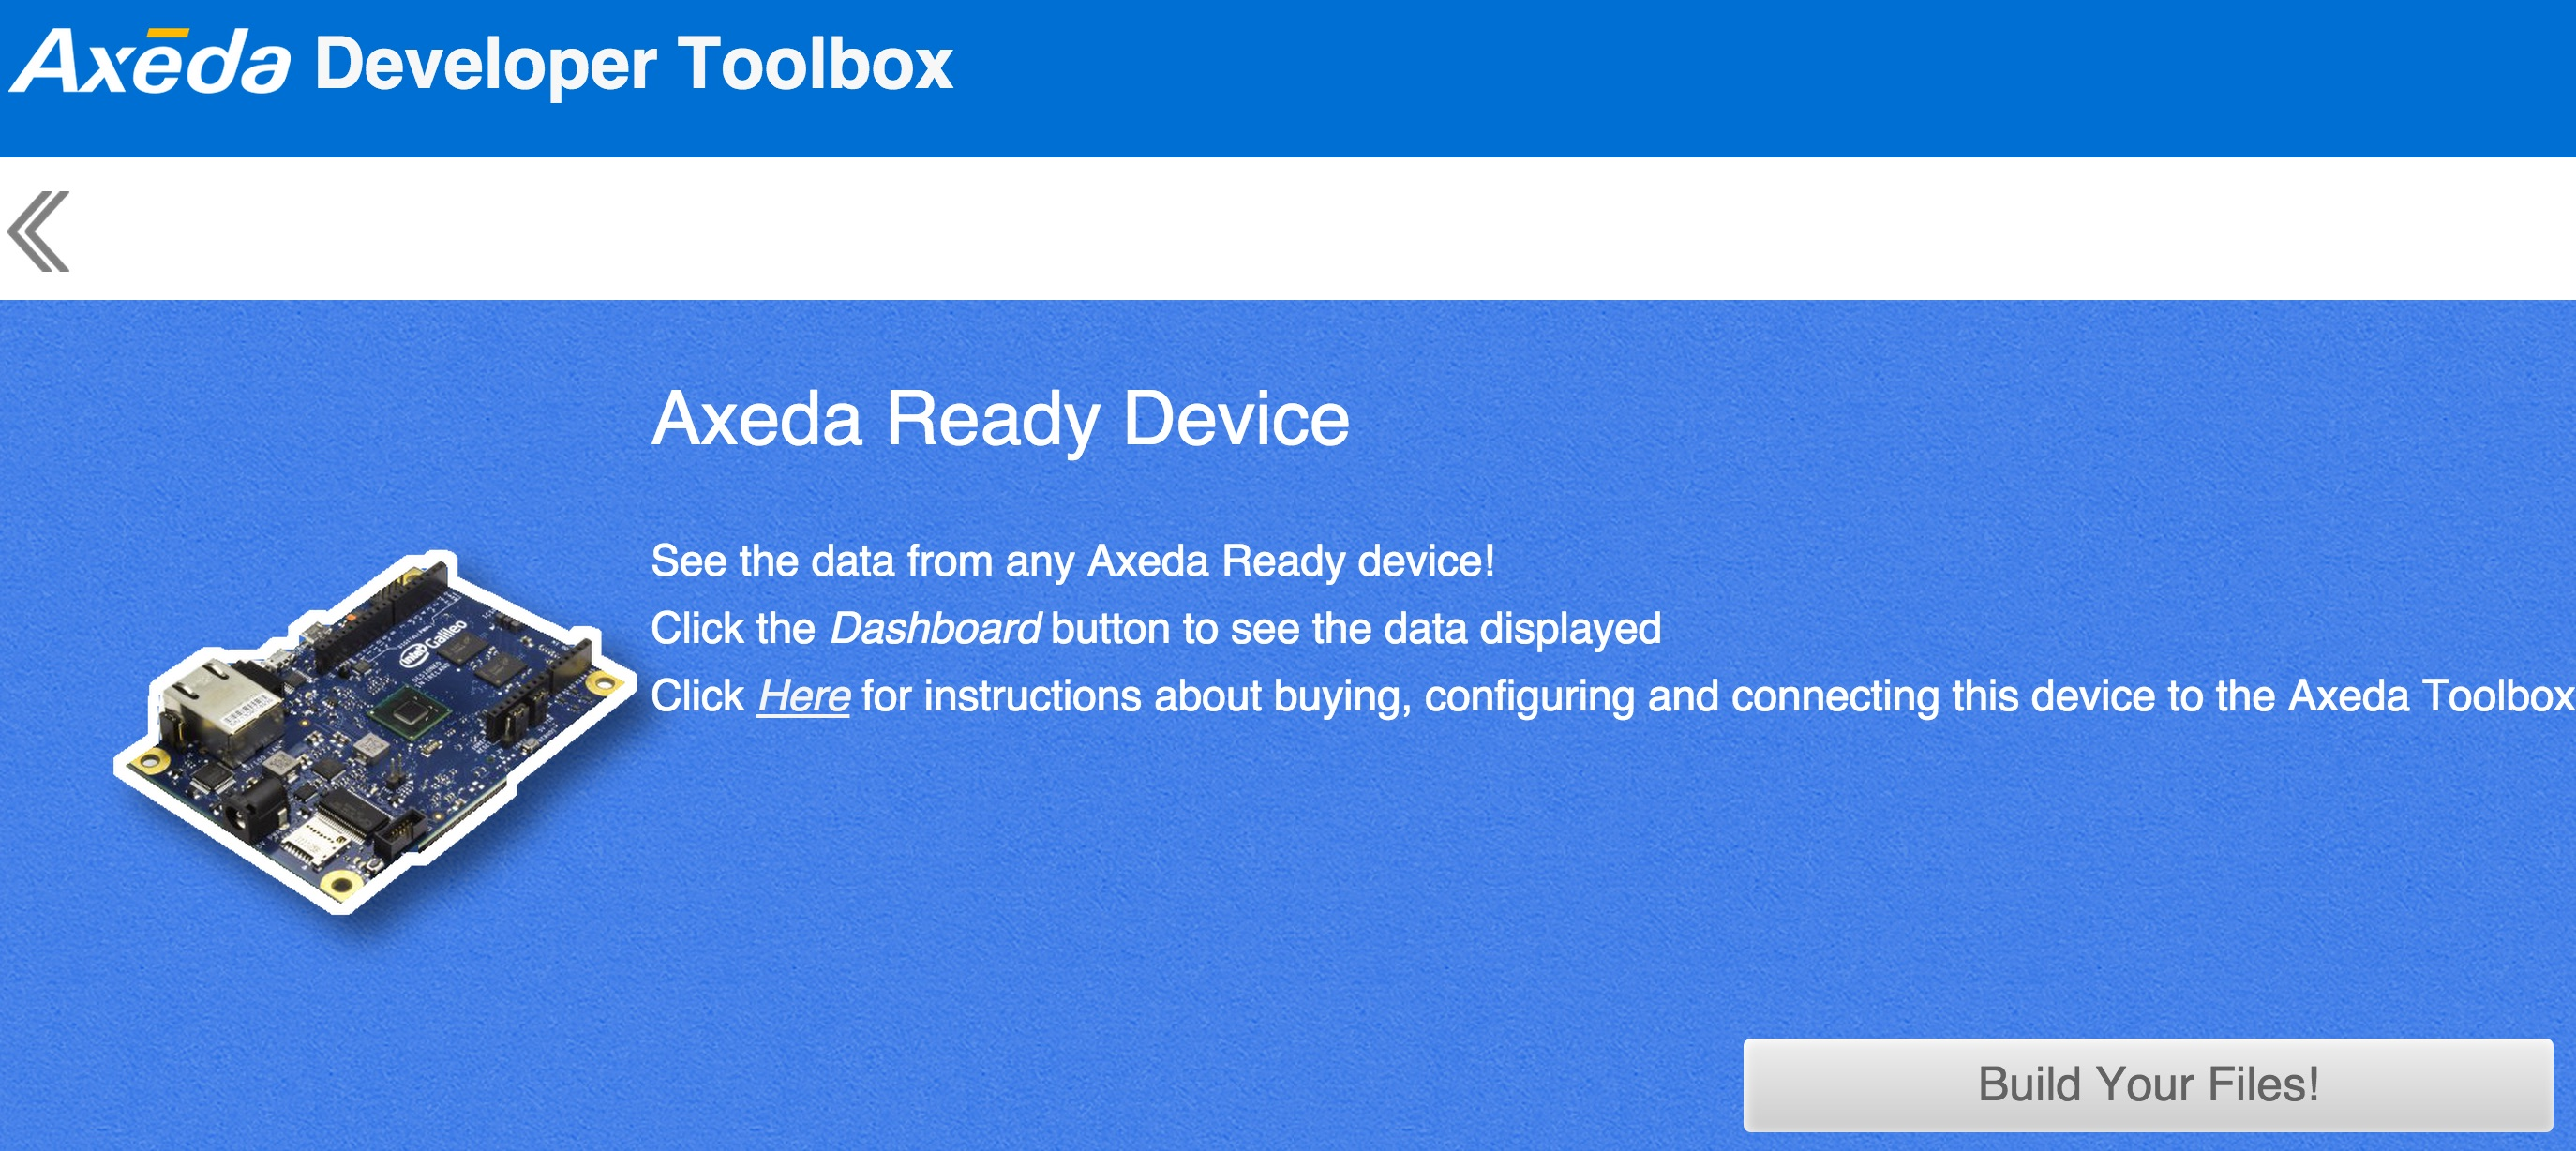 Axeda_Developer_Toolbox_-_Axeda_Ready.jpg